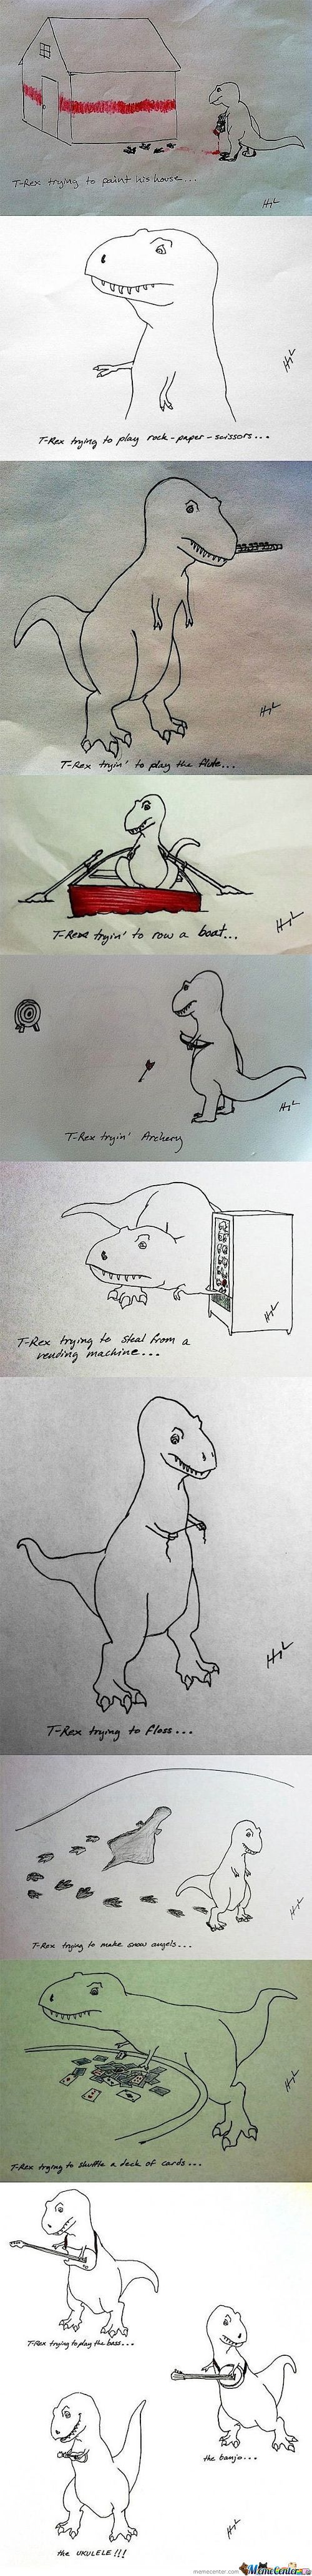 T-Rex's Diaries...i'll Watch That.